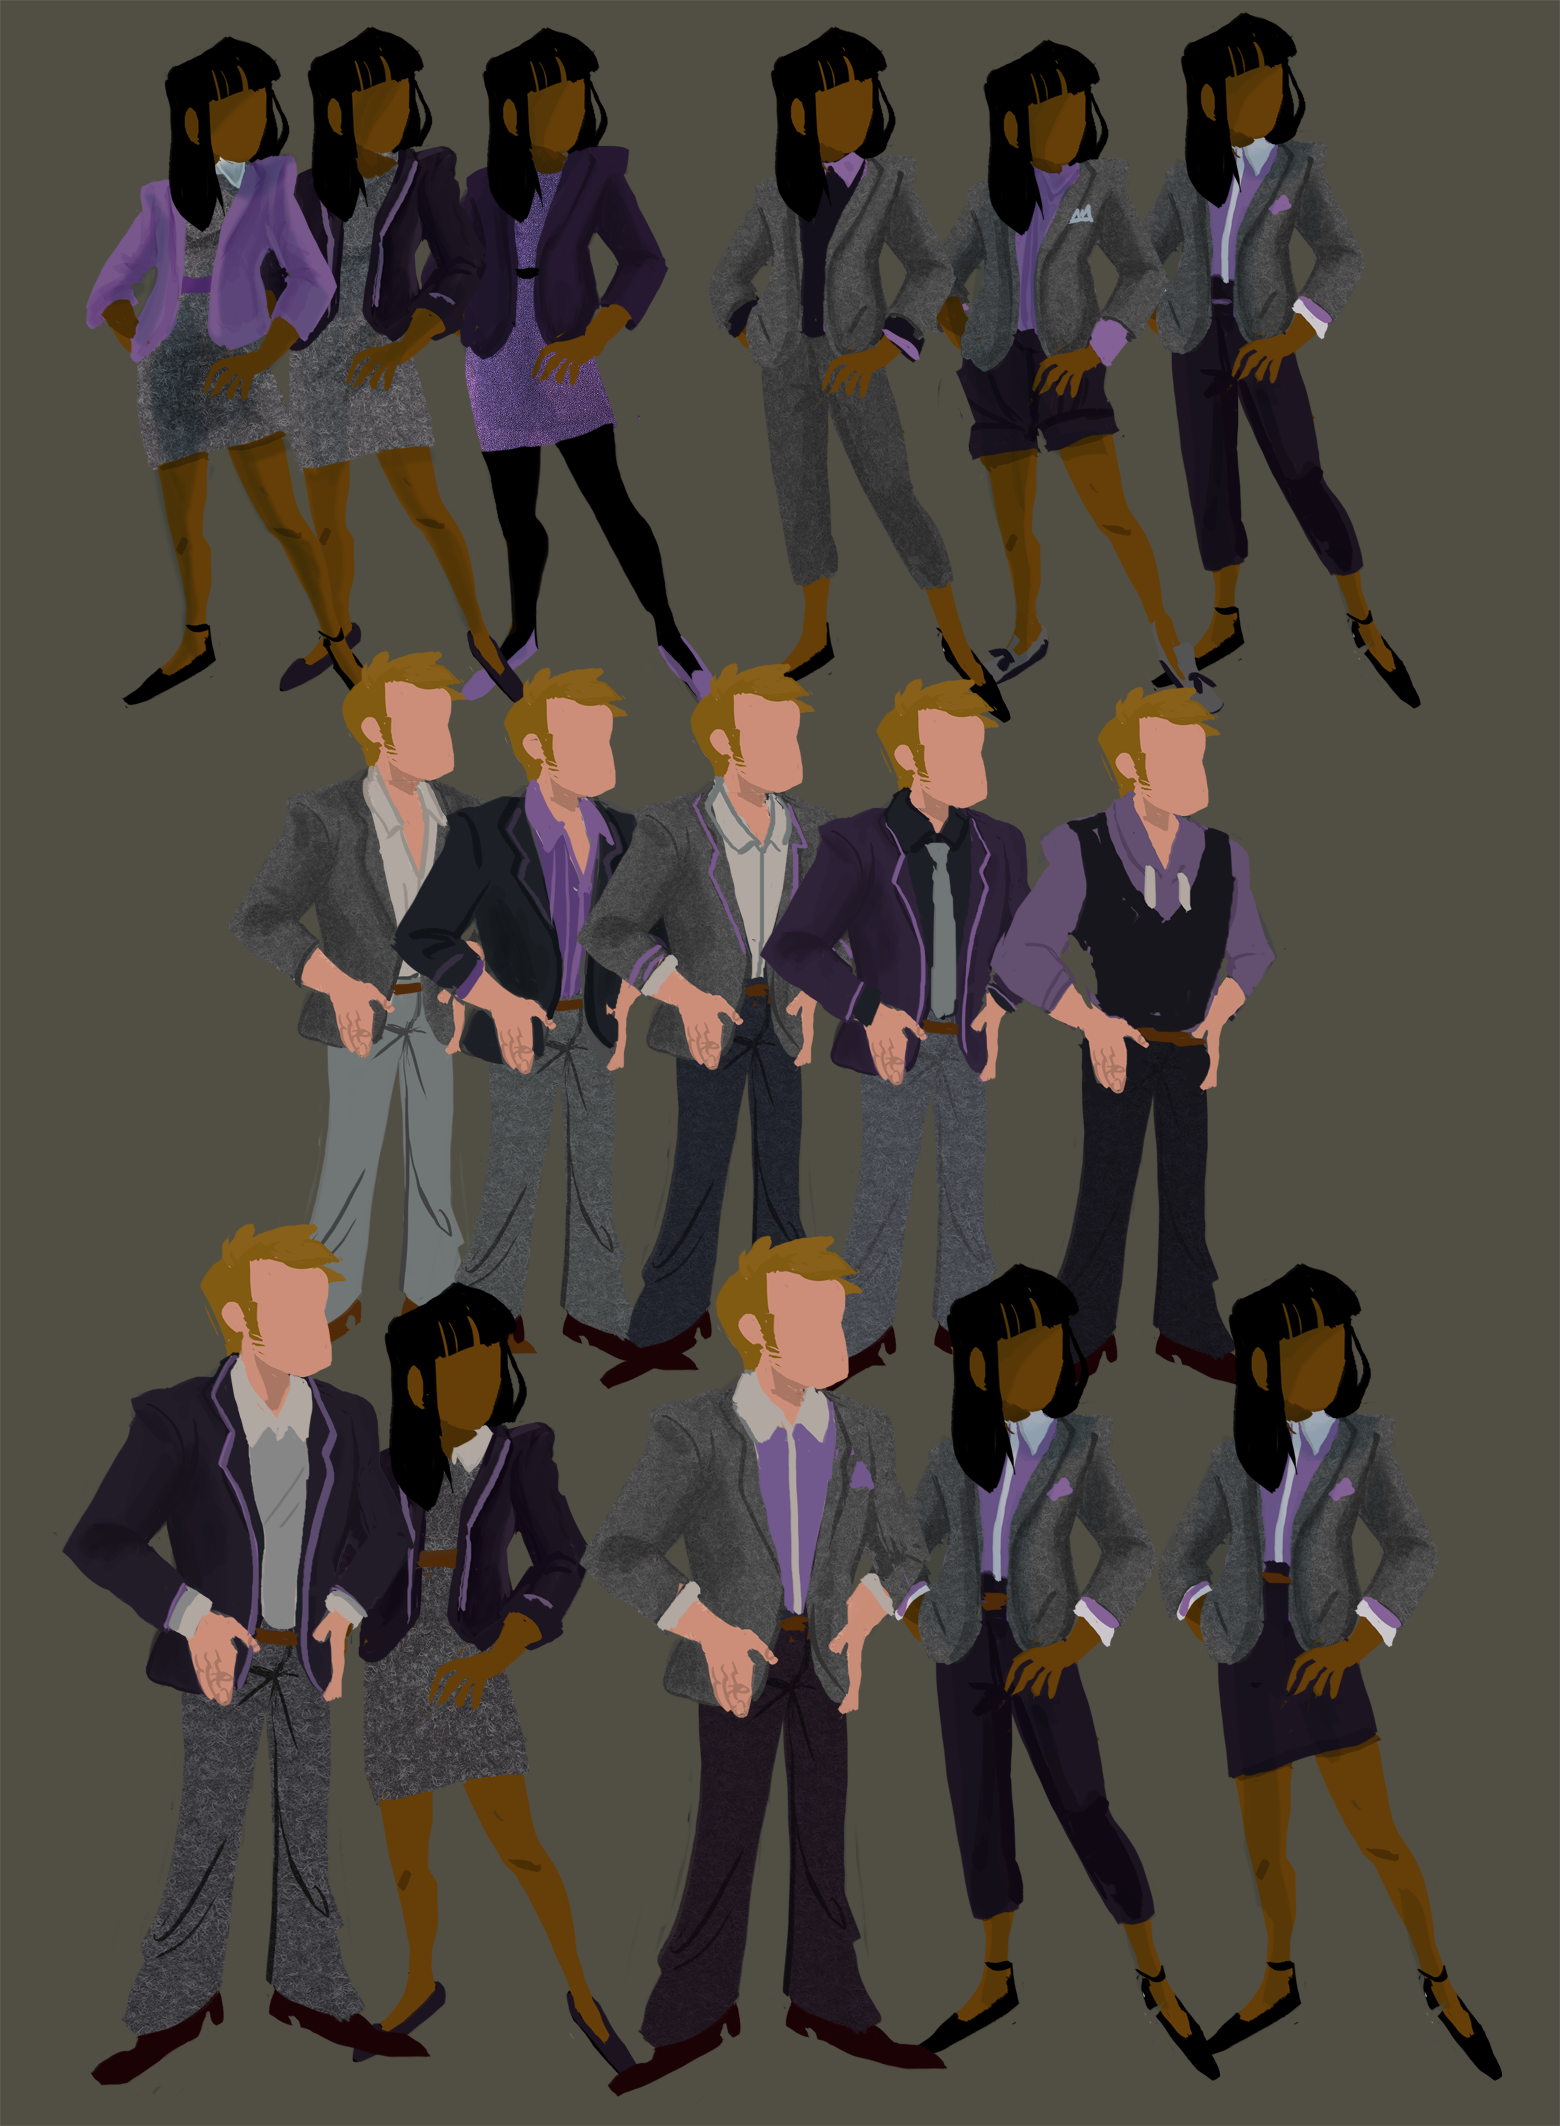 staff_outfits.png